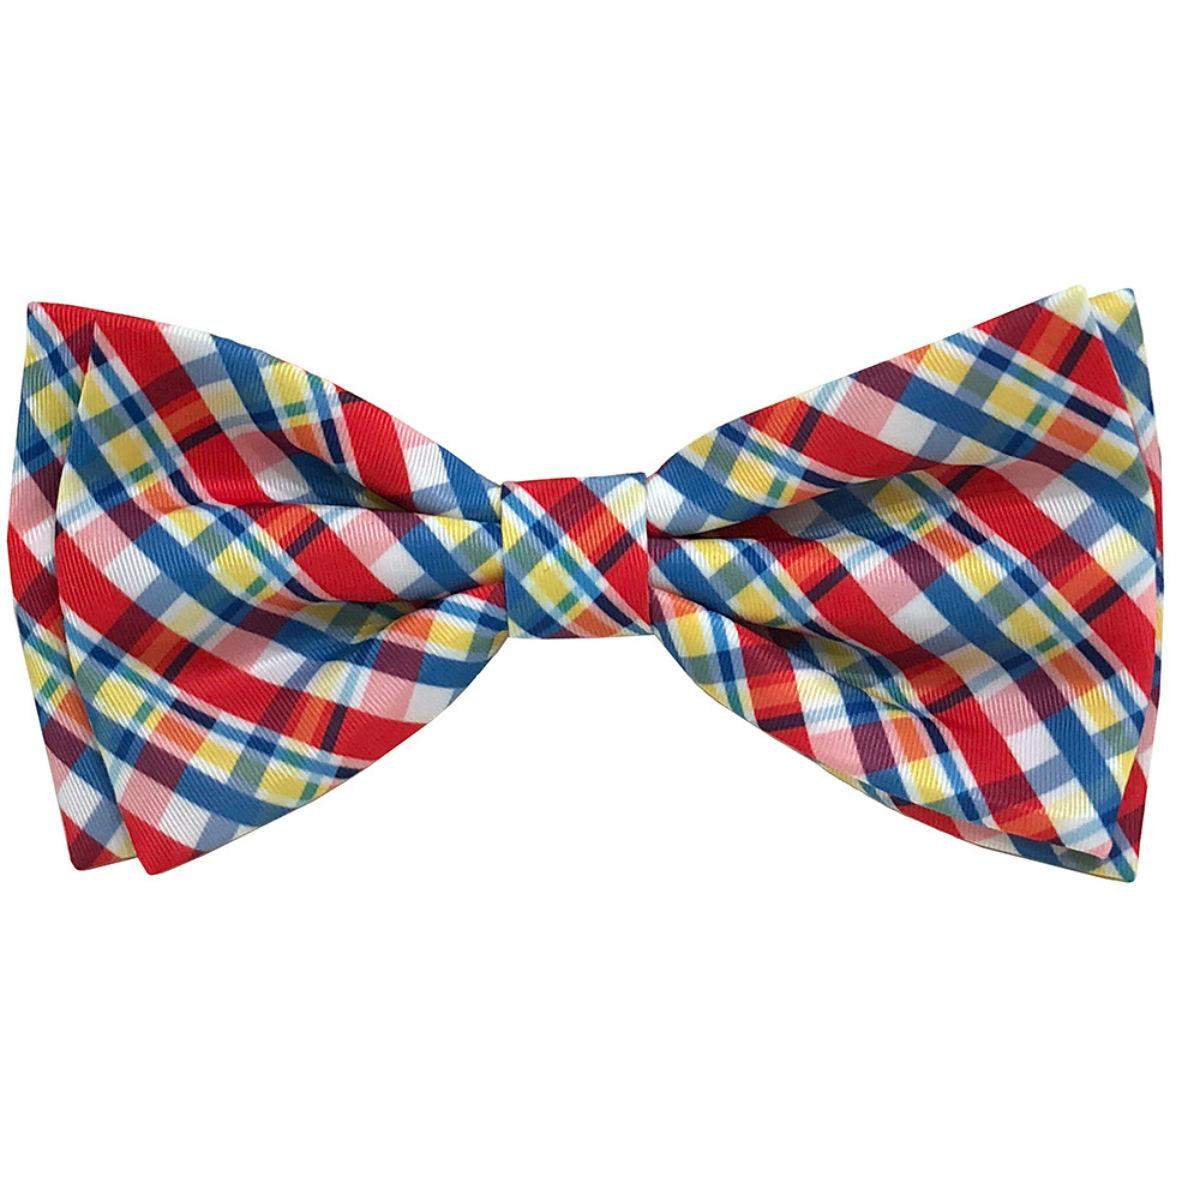 Huxley & Kent Dog and Cat Bow Tie Collar Attachment - Preppy Plaid